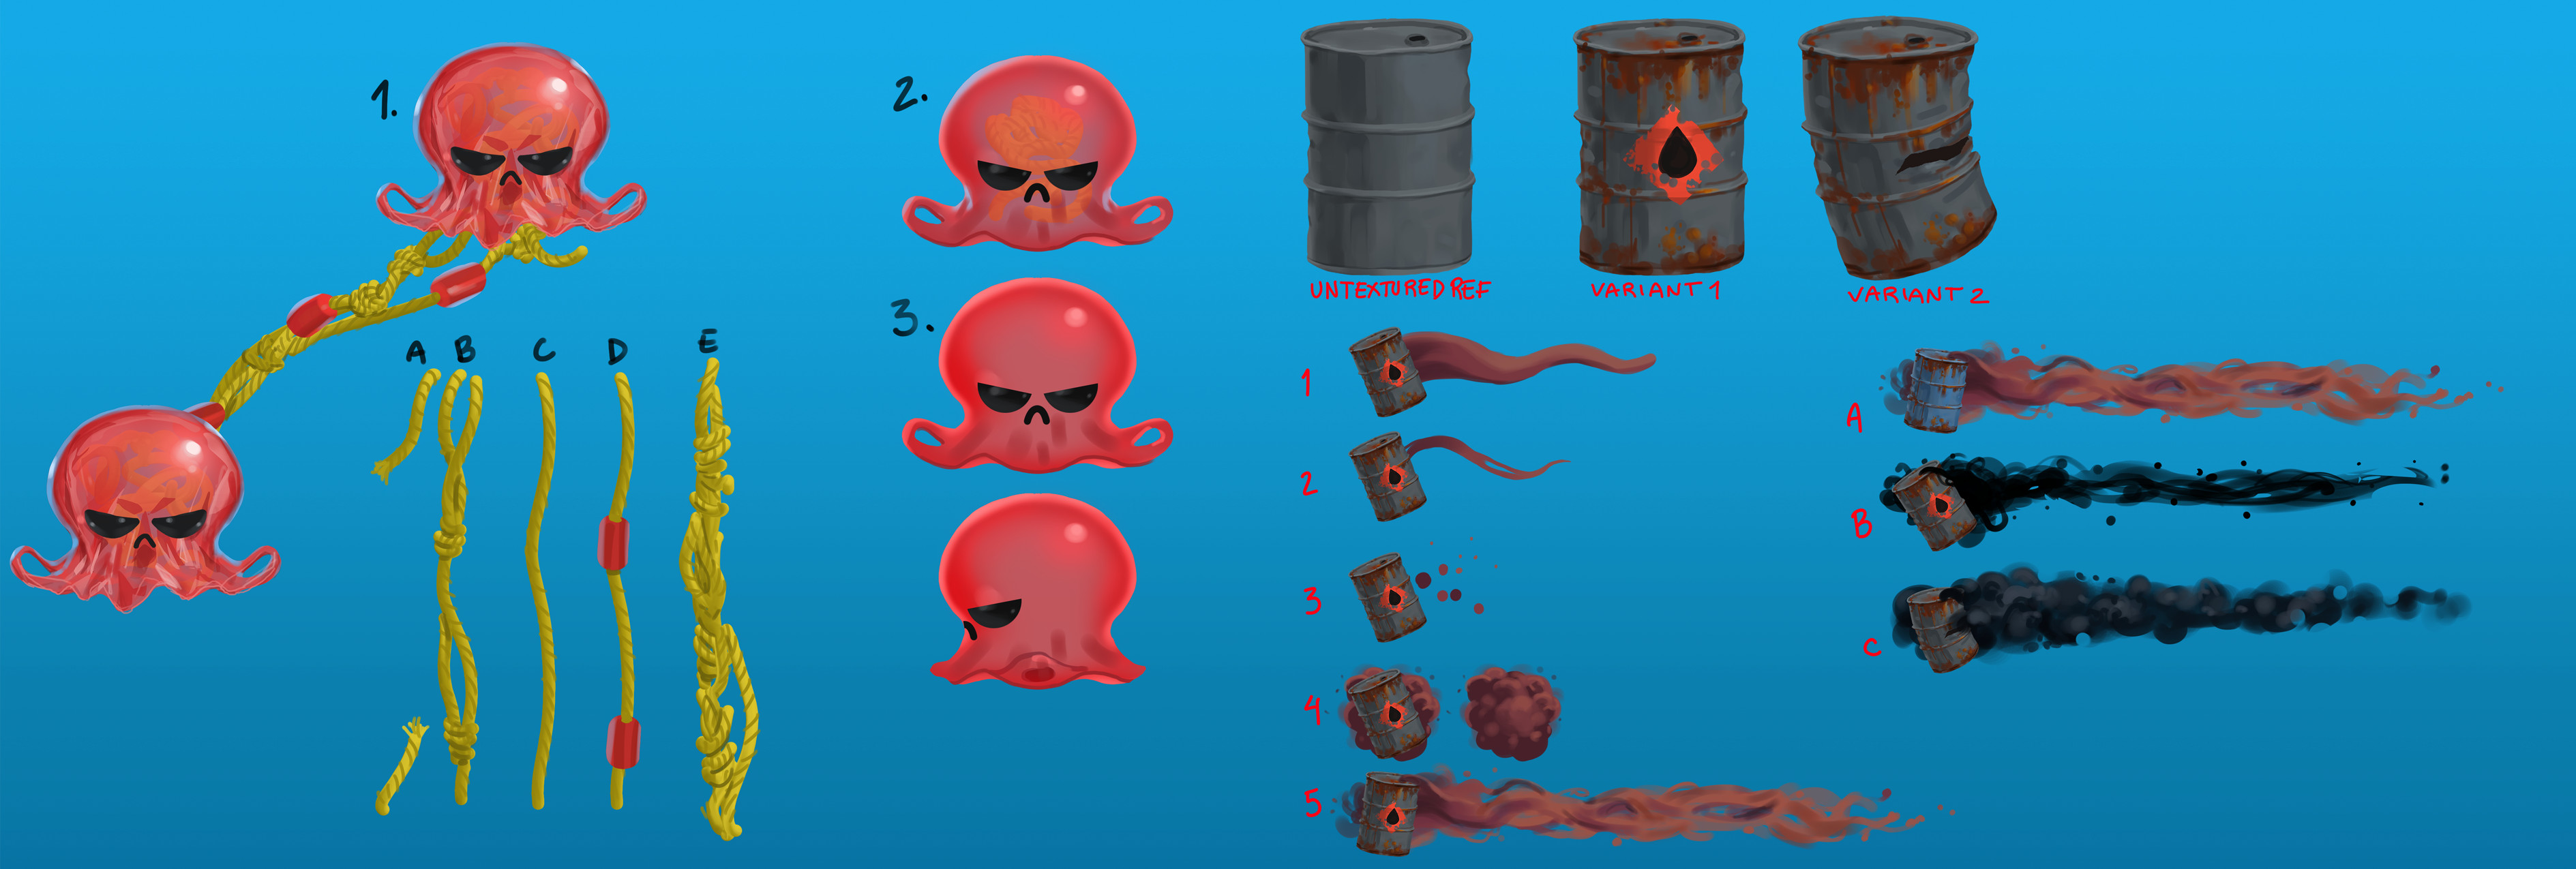 Concepts for enemies and obstacles  Since the theme of the game was pollution, all the enemies and obstacles were made out of man-made objects. Here the jellyfish and and wall are made out of plastic debris and an oil drum respectively.